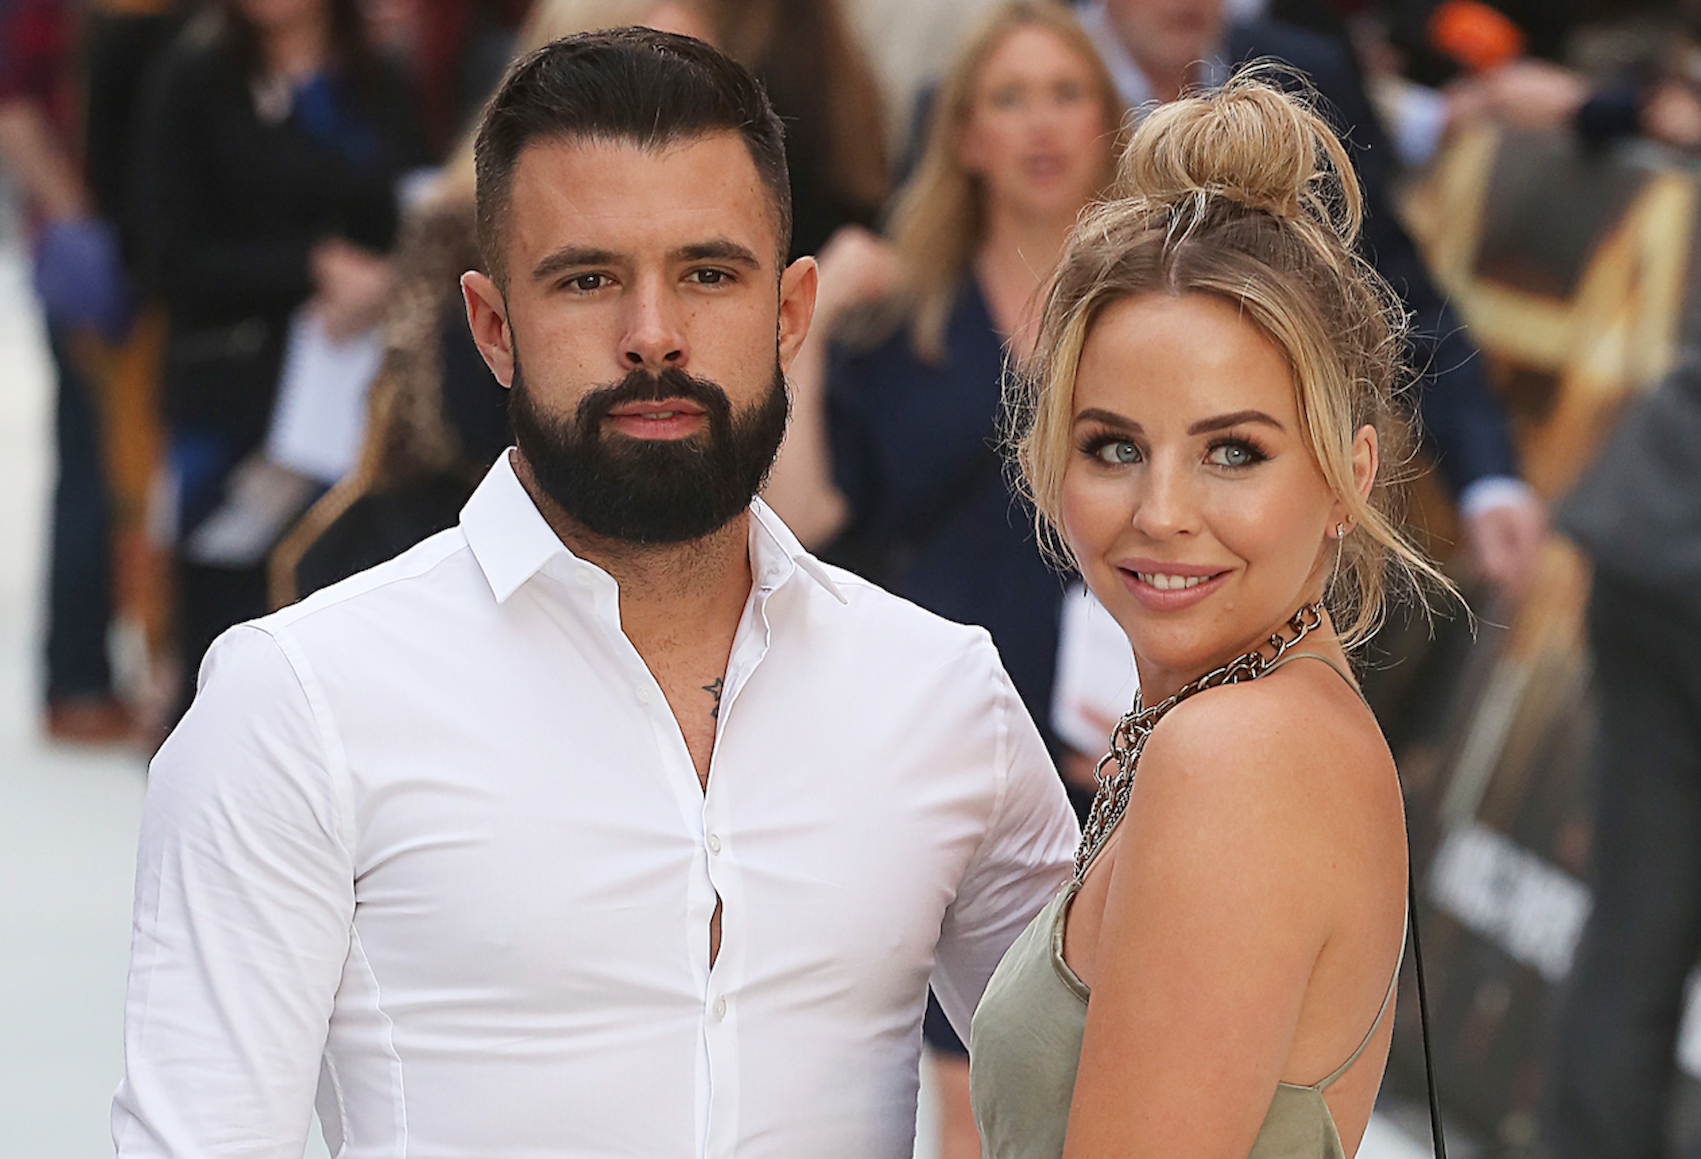 Lydia Bright takes ex back for third time after he dumped her when she was pregnant